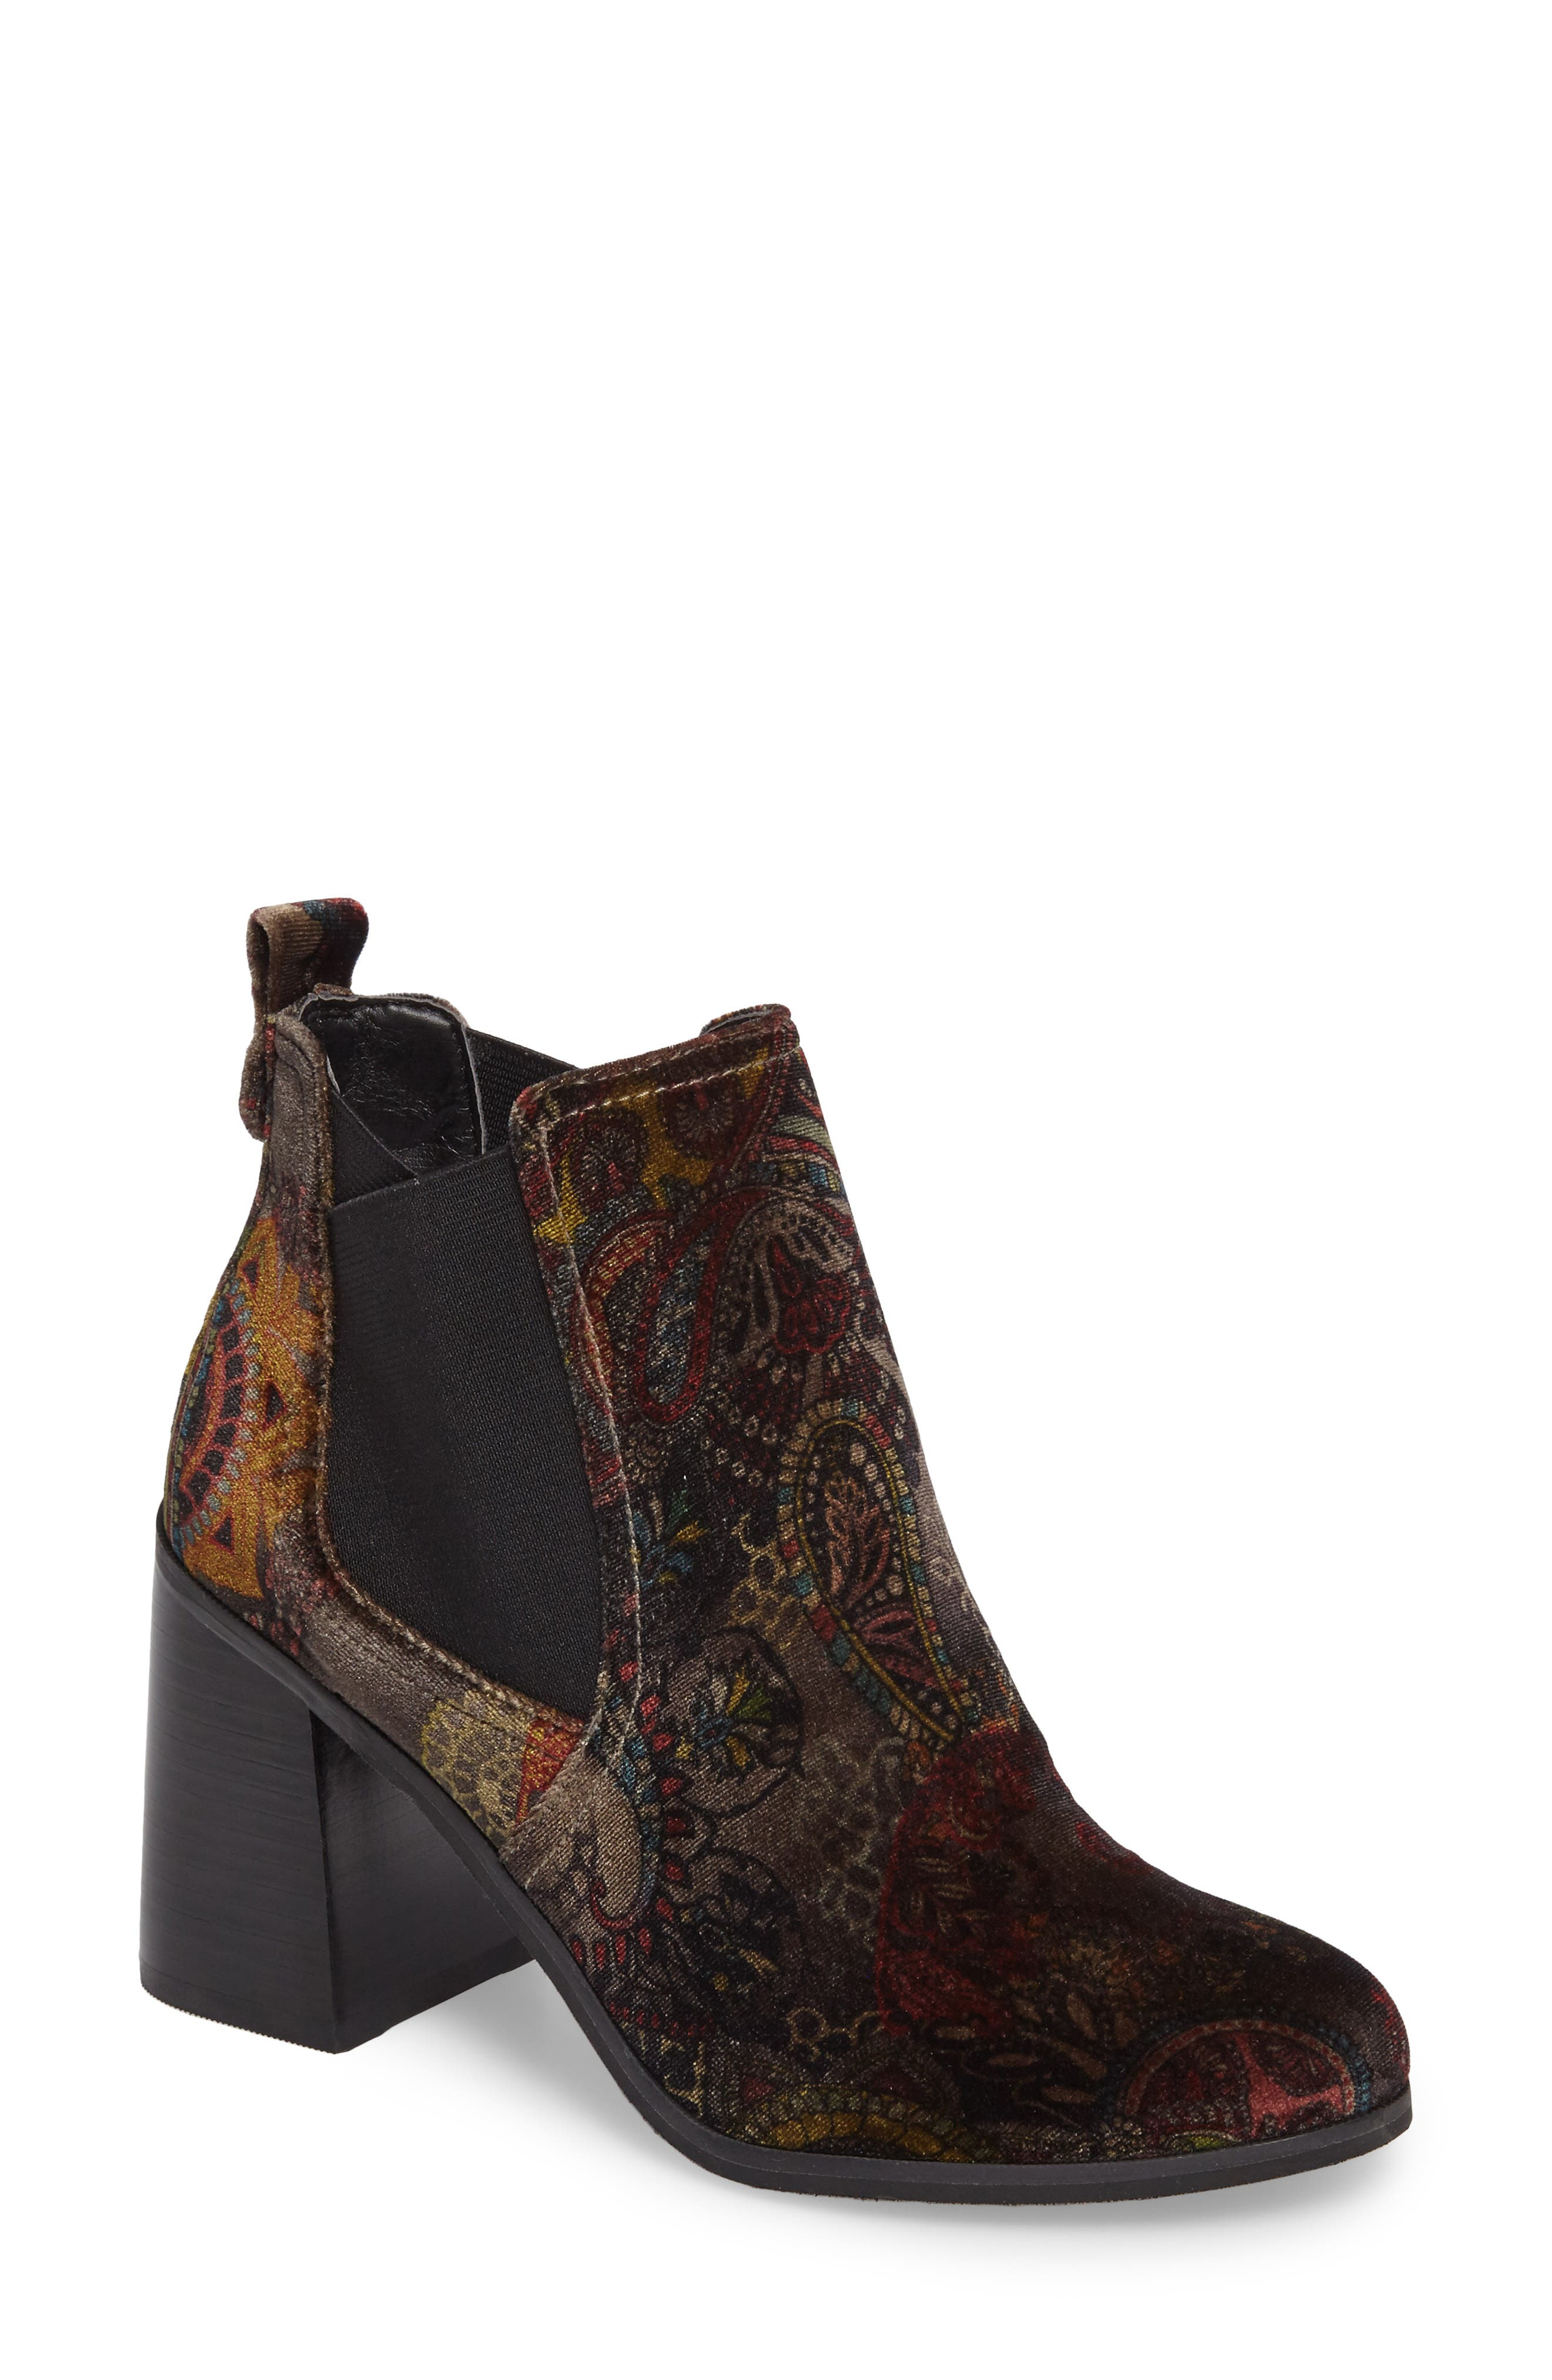 Alternate Image 1 Selected - BP. Quinn Flared Heel Chelsea Bootie (Women)